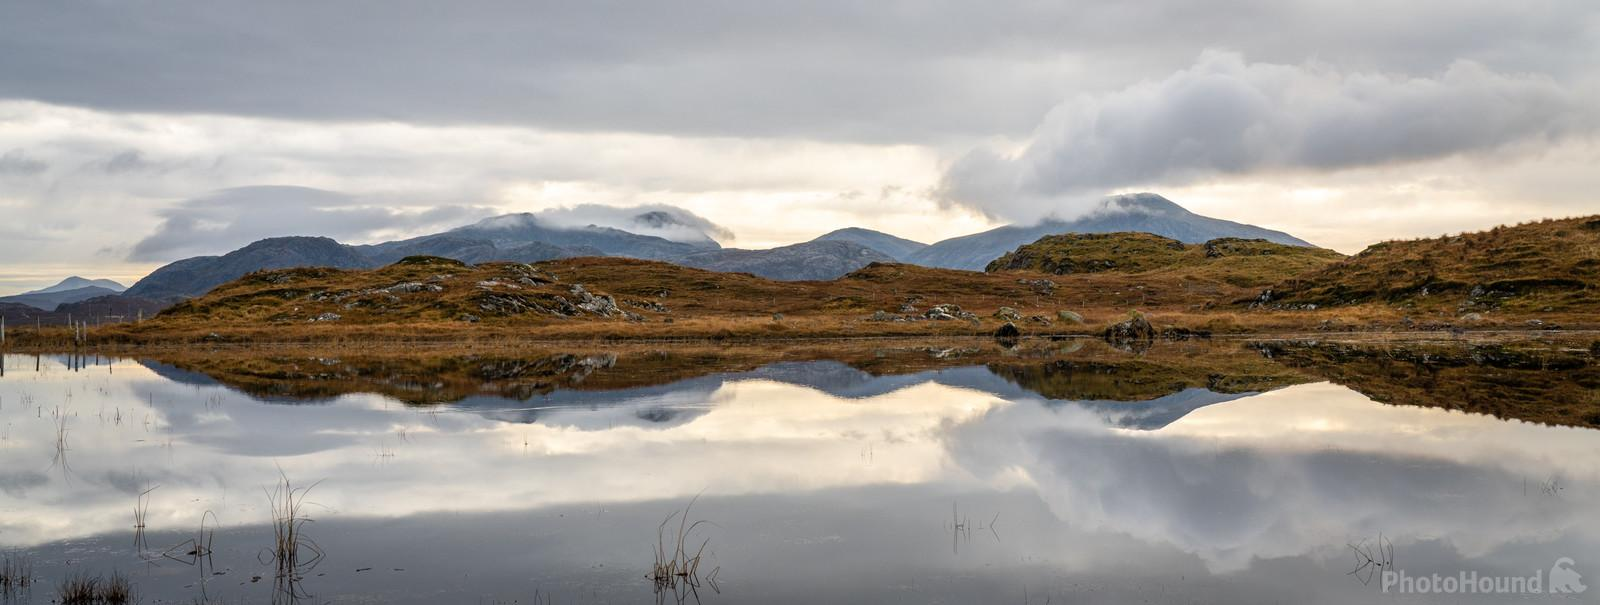 Image of Uig tarn by Richard Lizzimore